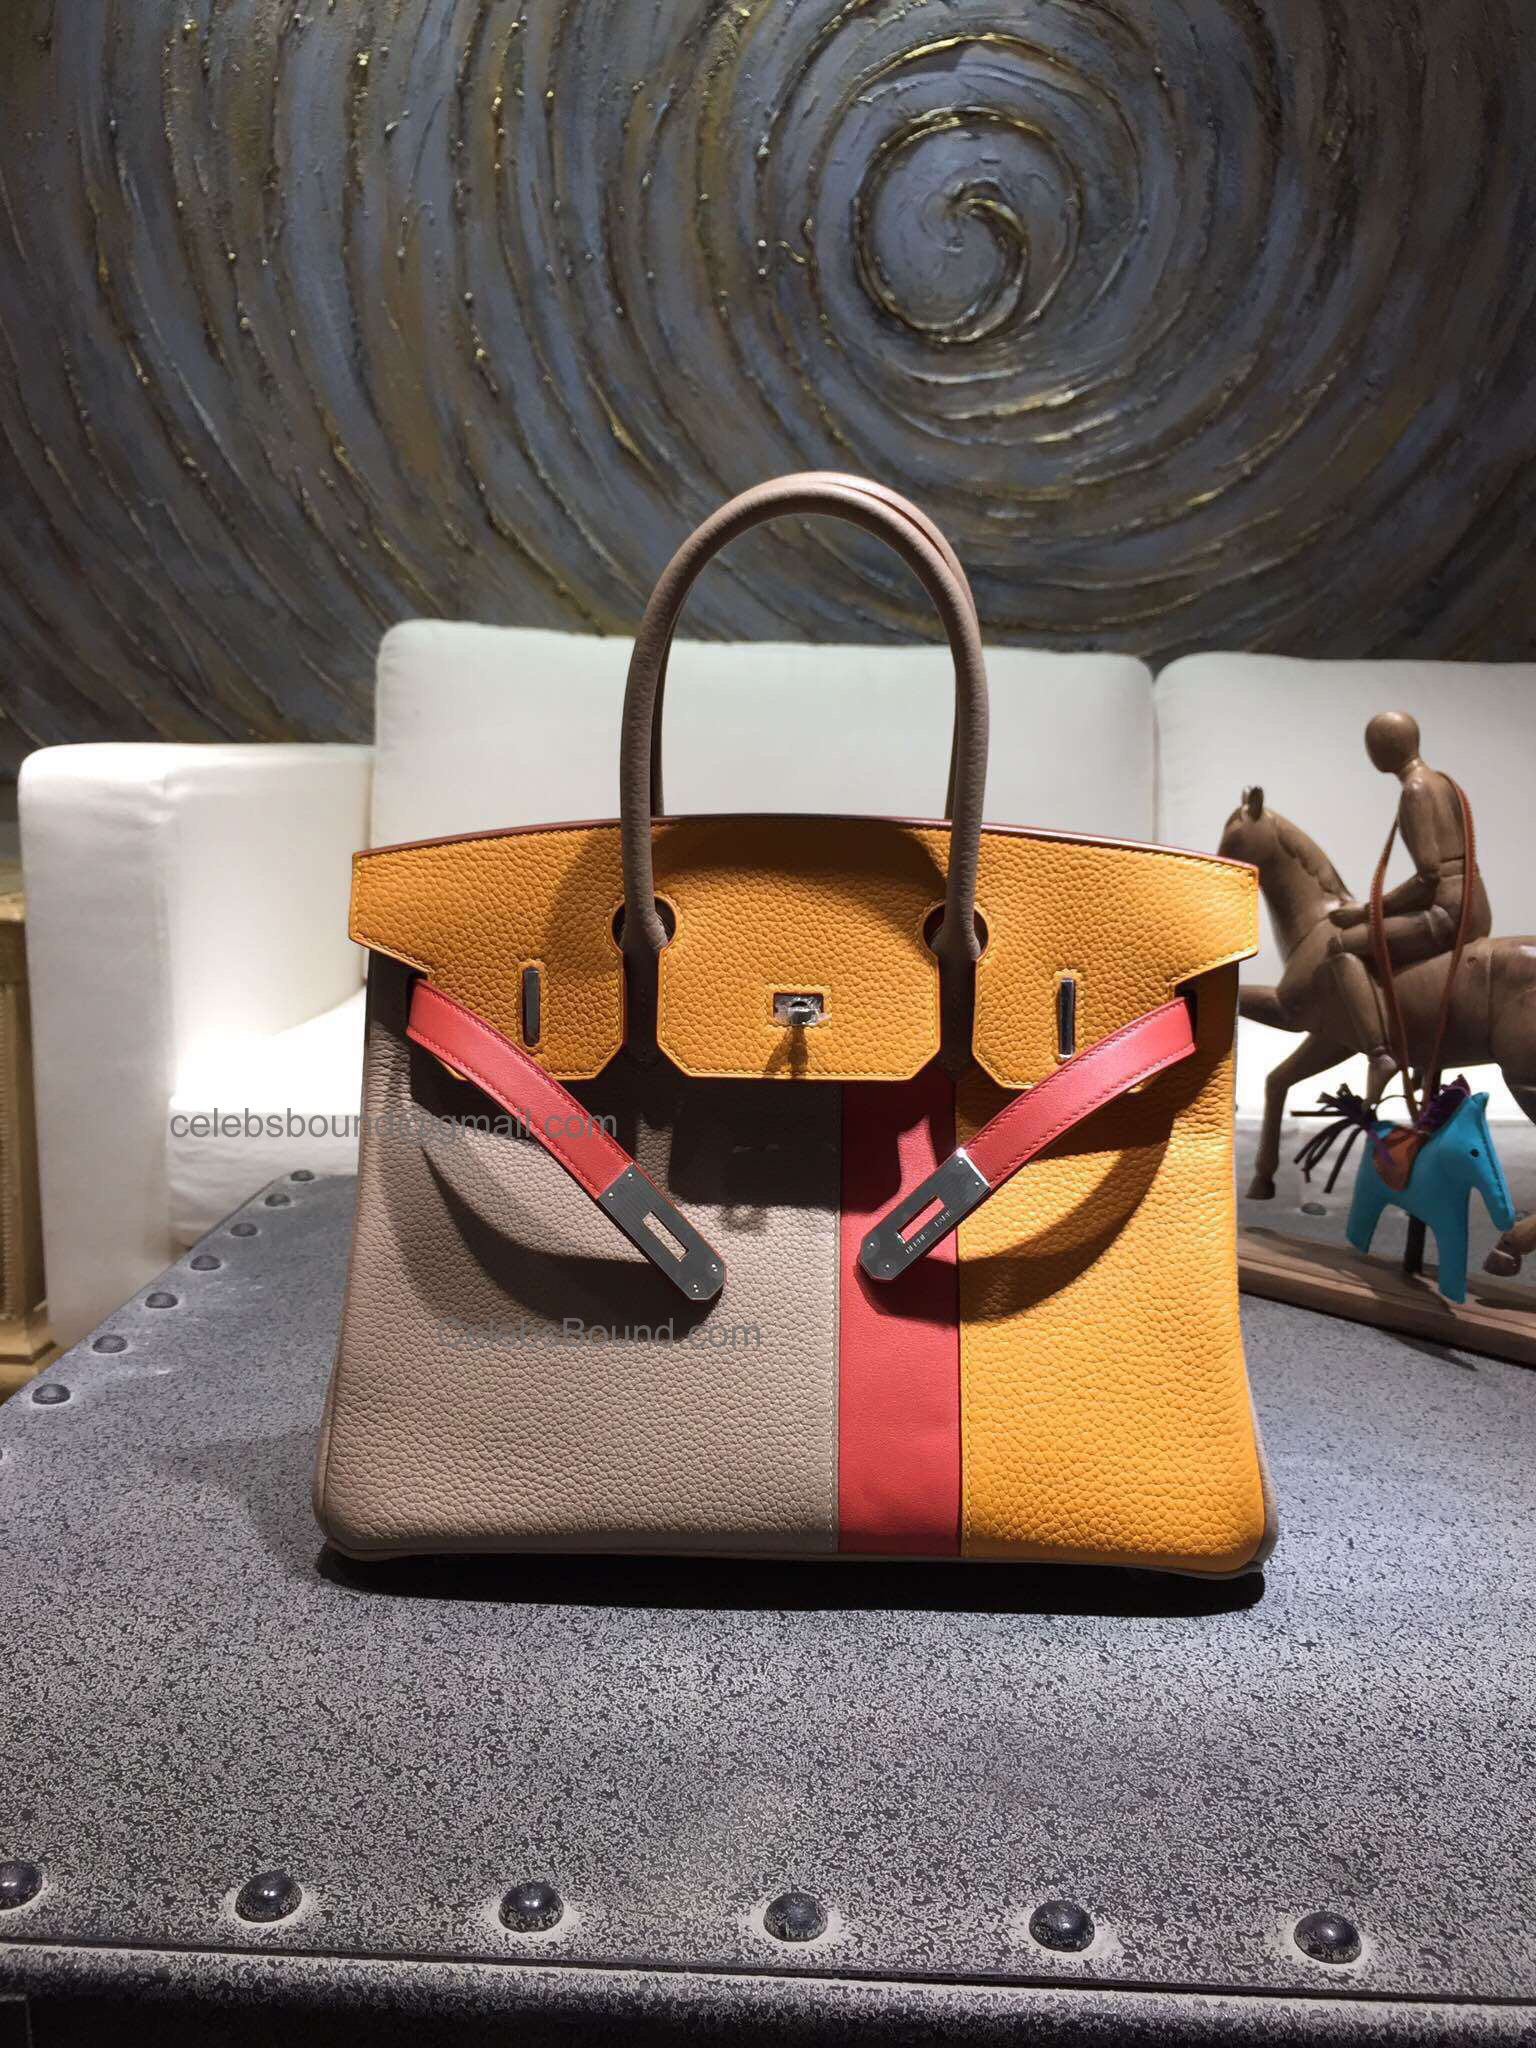 Handstitched Hermes Birkin 30 Bag in Multicolored ck81 Gris Tourerelle Calfskin SHW